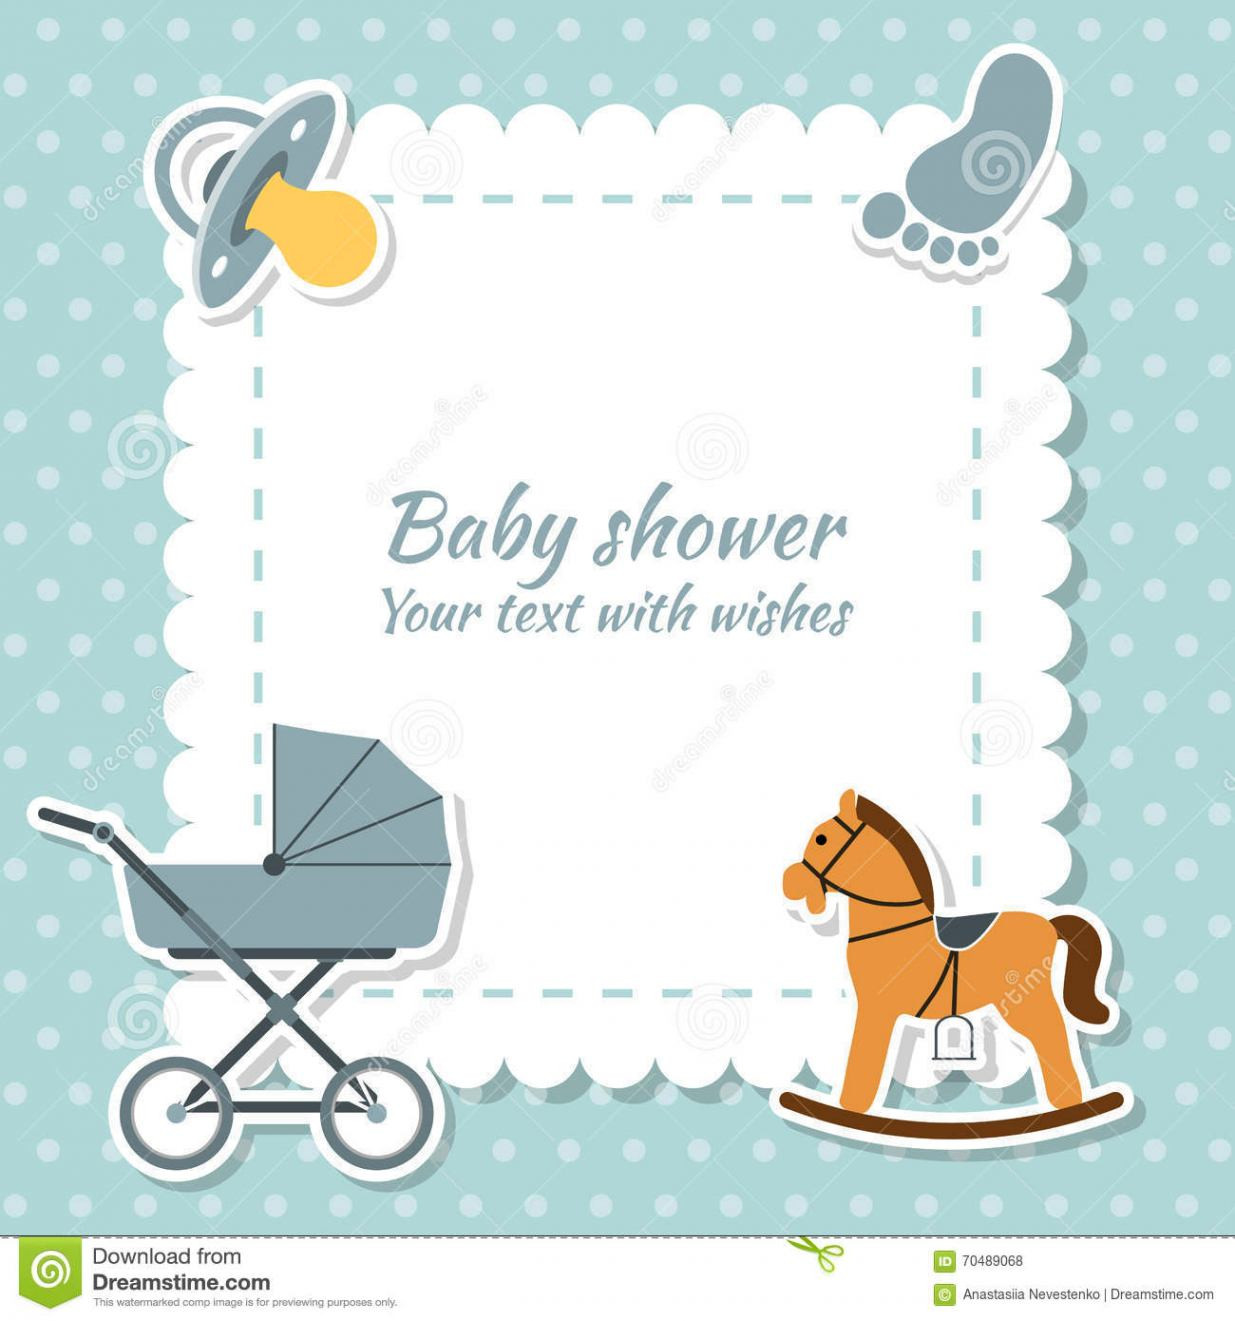 Full Size of Baby Shower:stylish Baby Shower Wishes Picture Inspirations Baby Shower Wishes Coed Baby Shower Baby Shower Goodie Bags Baby Shower Video Baby Shower Bingo Diy Baby Shower Invitations Baby Shower Gift Ideas